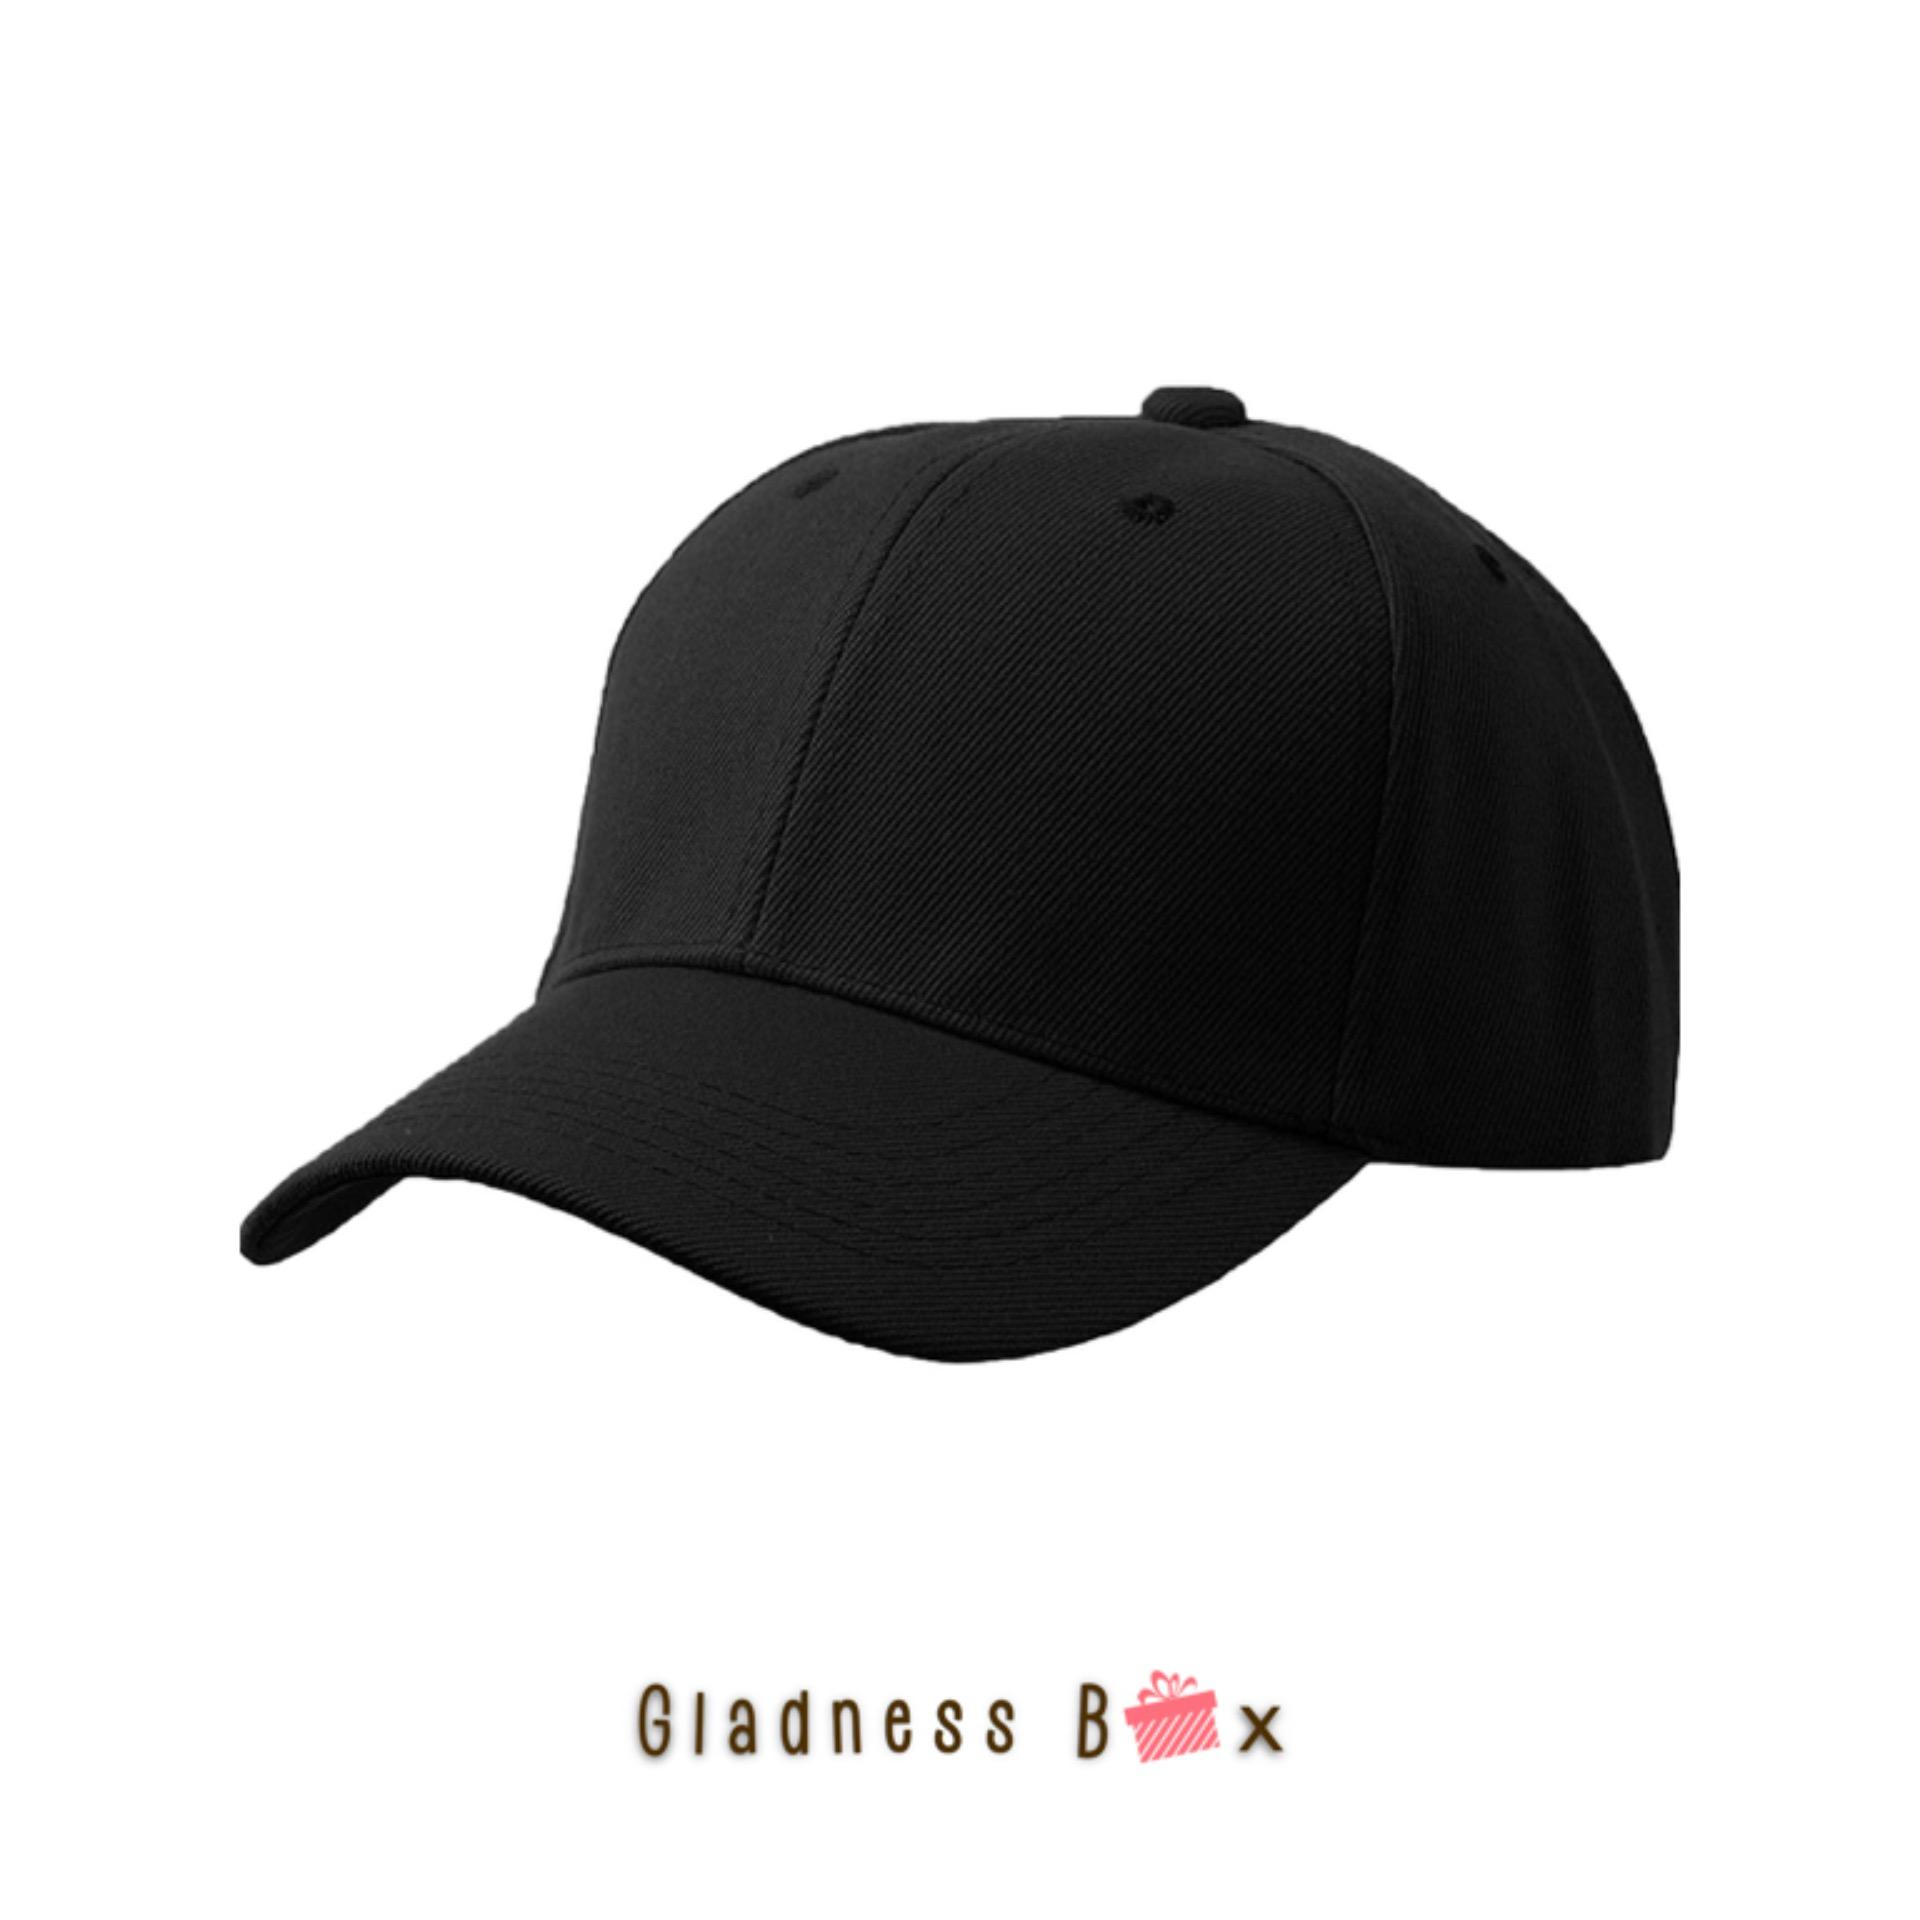 6b39b5aca8866 Gladness Box High Quality Plain Baseball Cap for Men Women Unisex